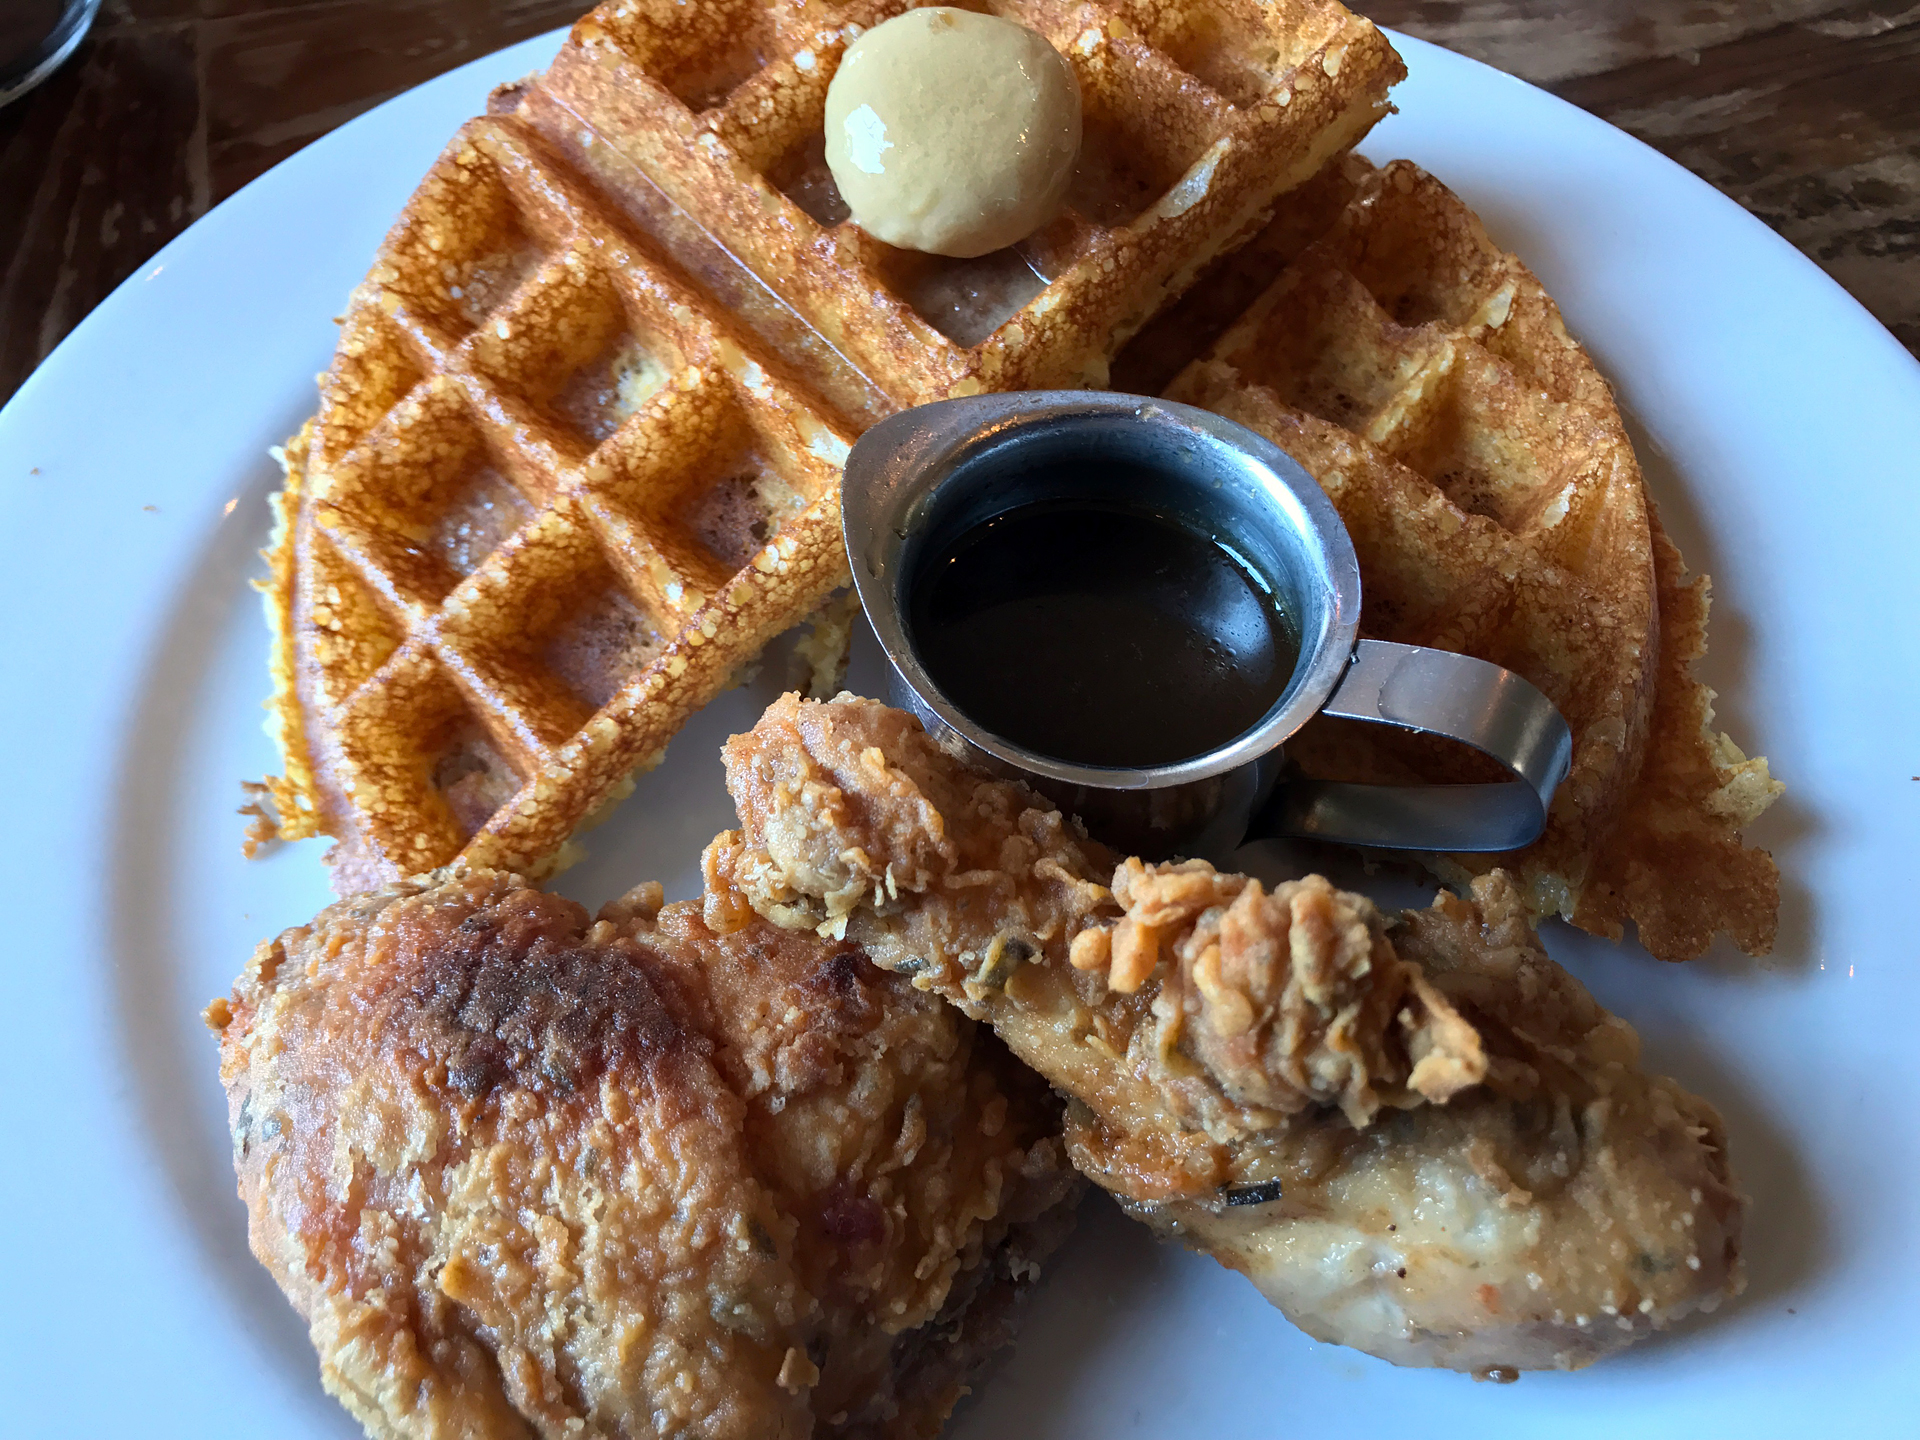 Tanya Holland's deservedly famous chicken and waffles at Brown Sugar Kitchen.